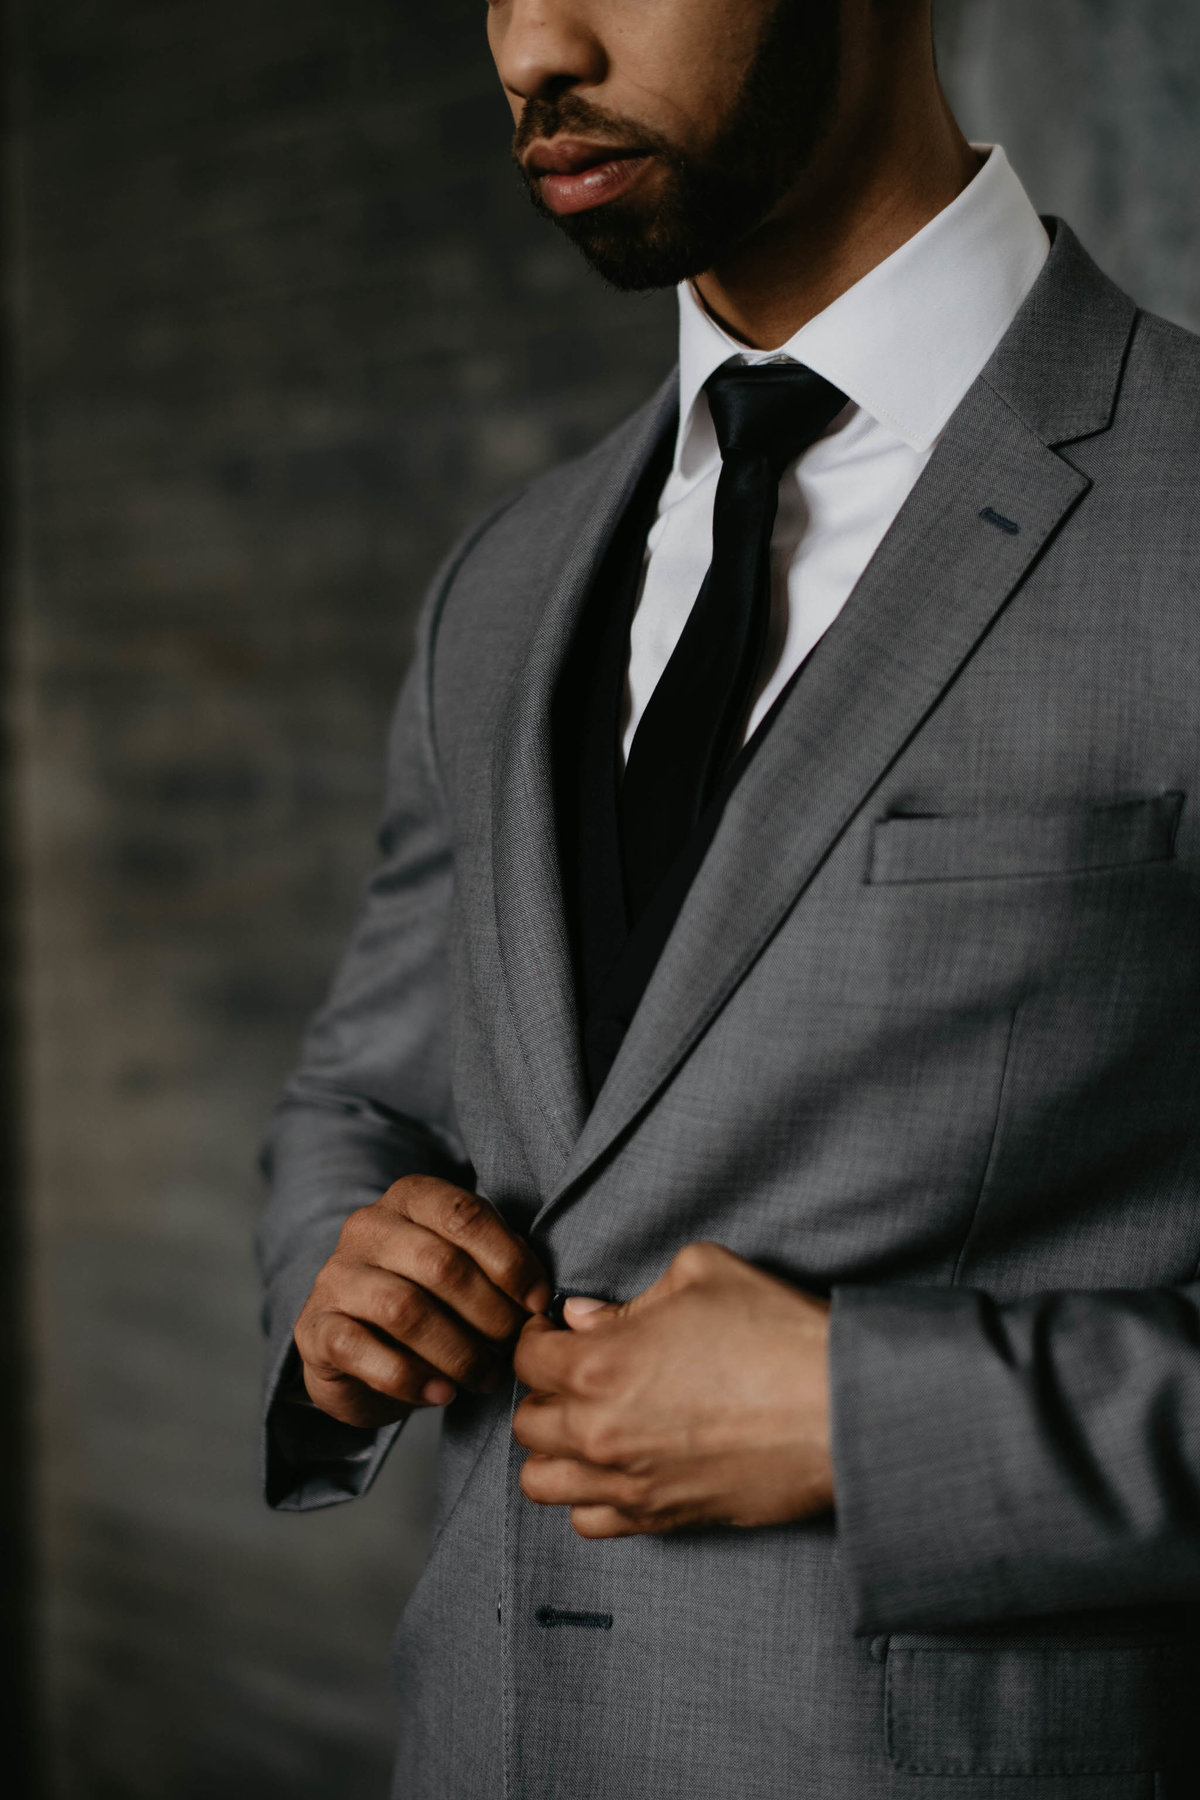 groom buttoning button on his suit